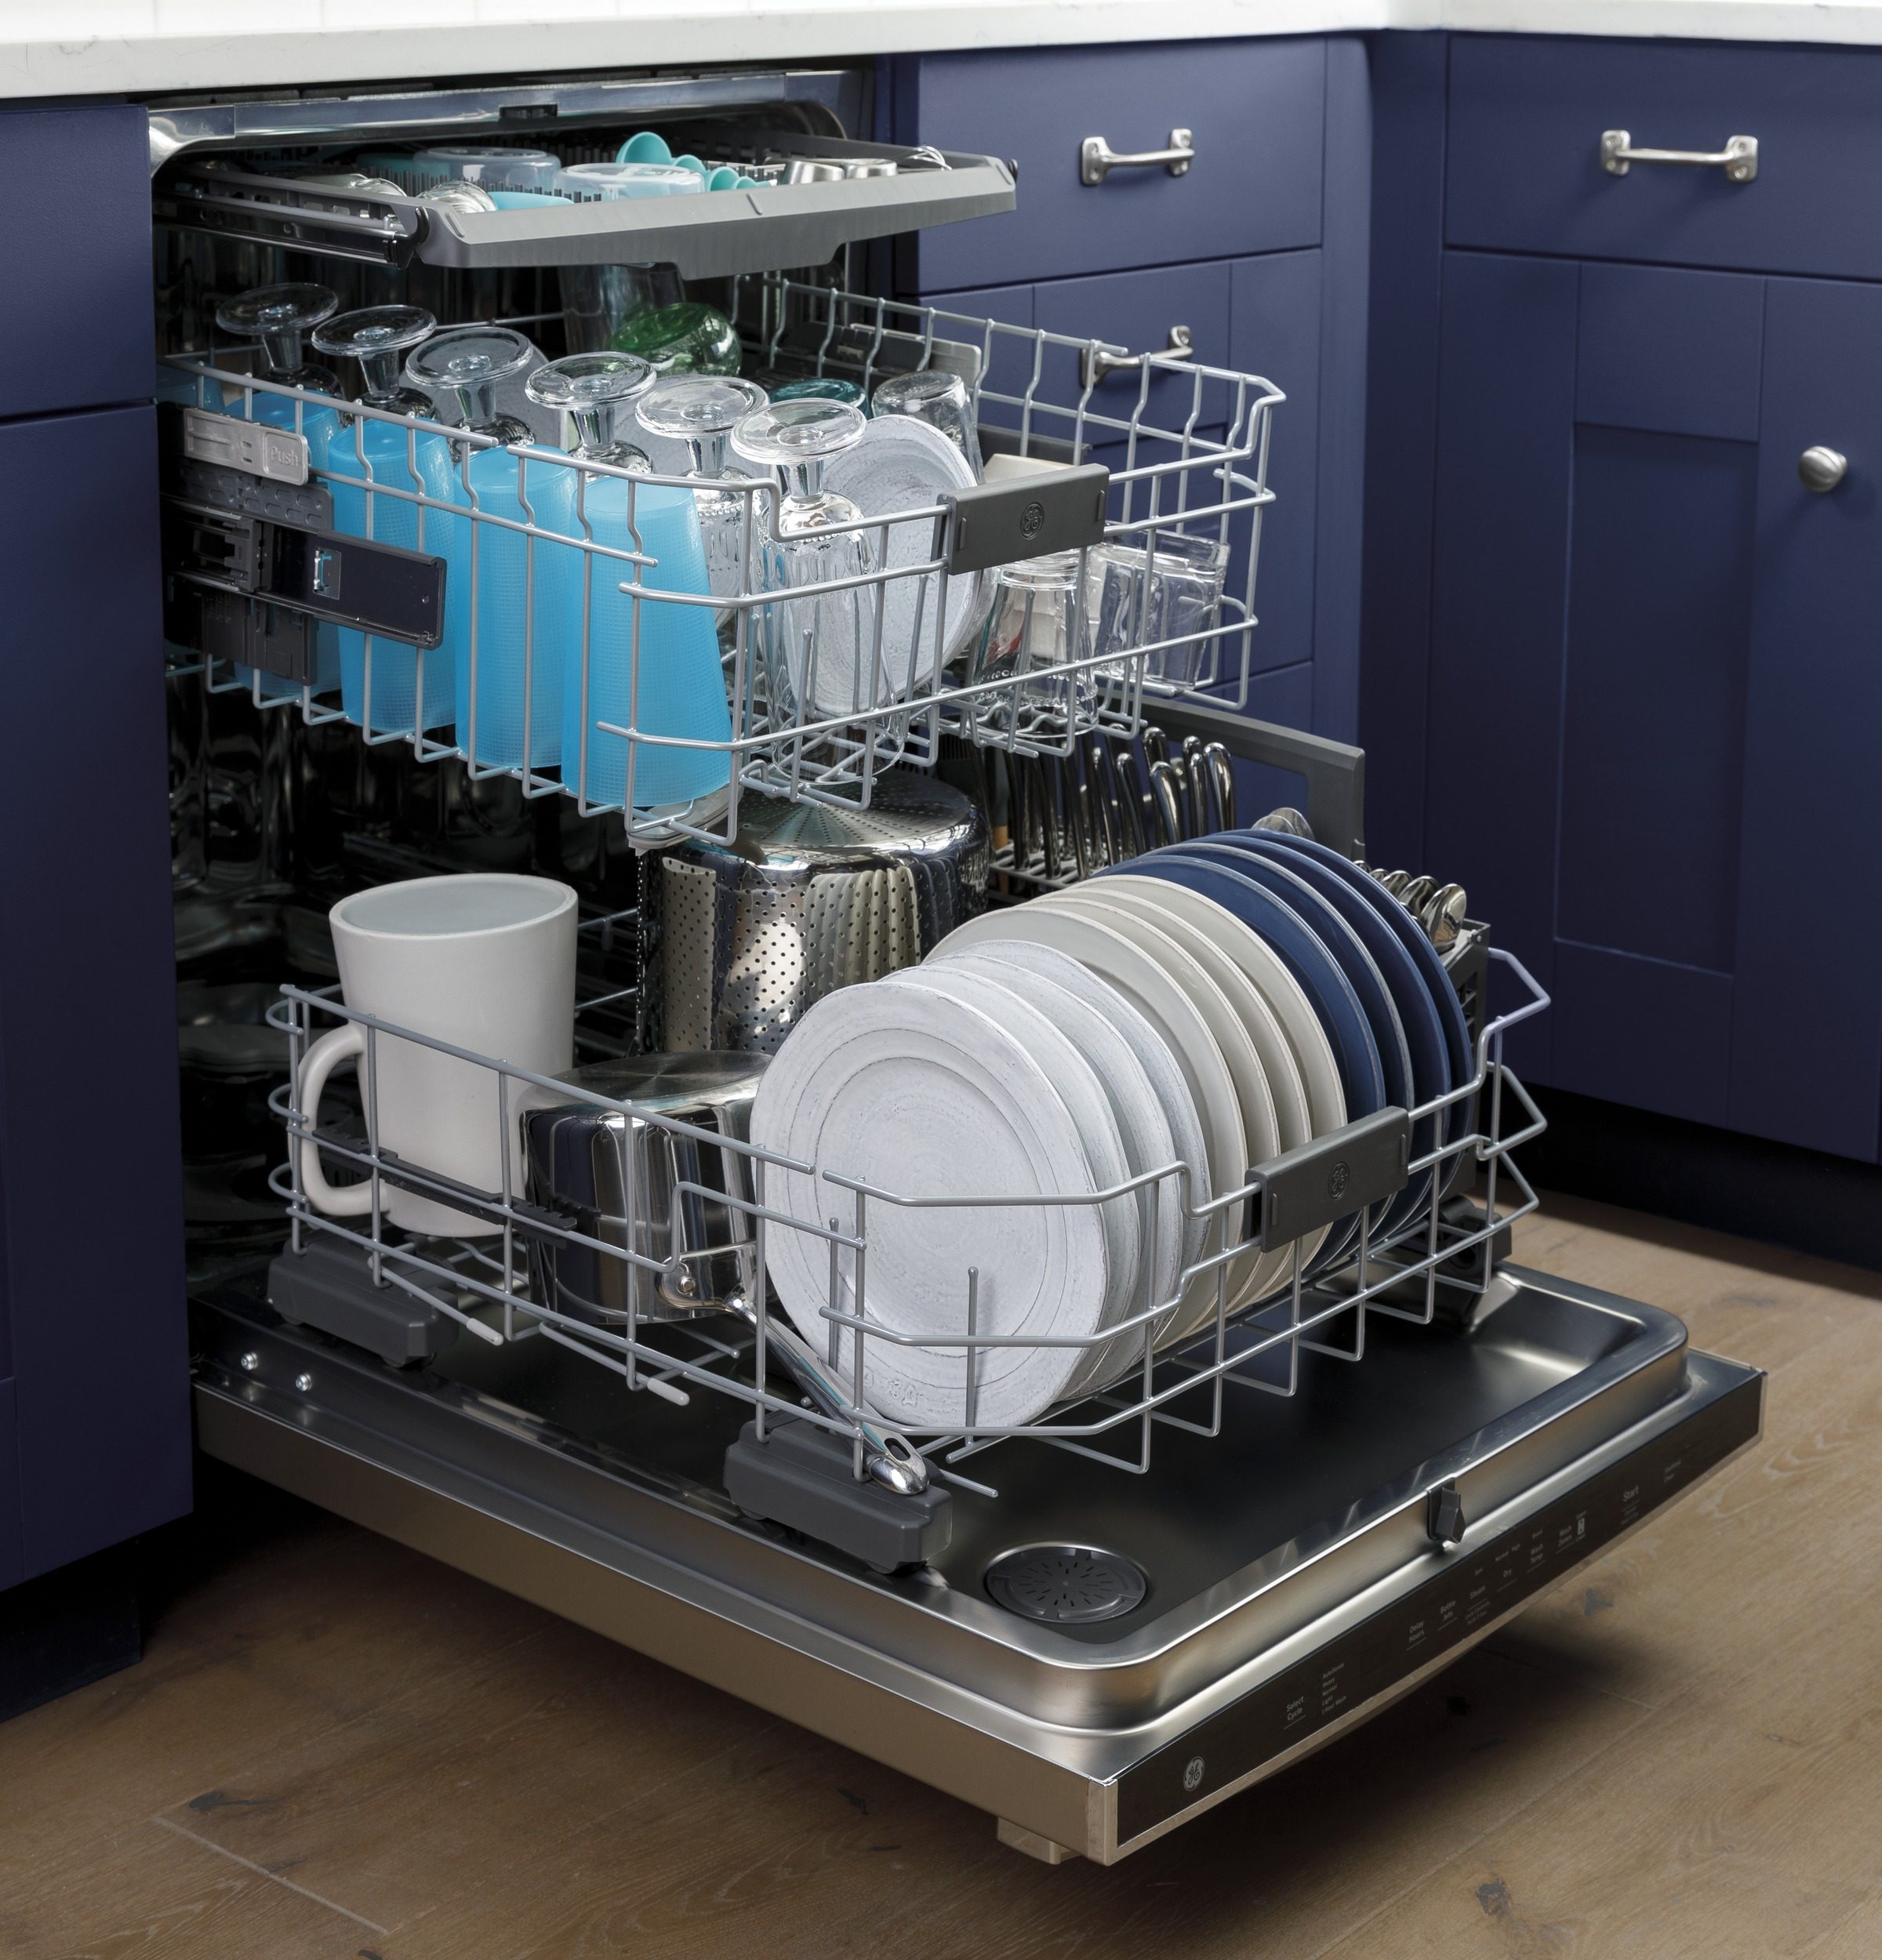 Model: GDP665SYNFS | GE GE® Fingerprint Resistant Top Control with Stainless Steel Interior Dishwasher with Sanitize Cycle & Dry Boost with Fan Assist